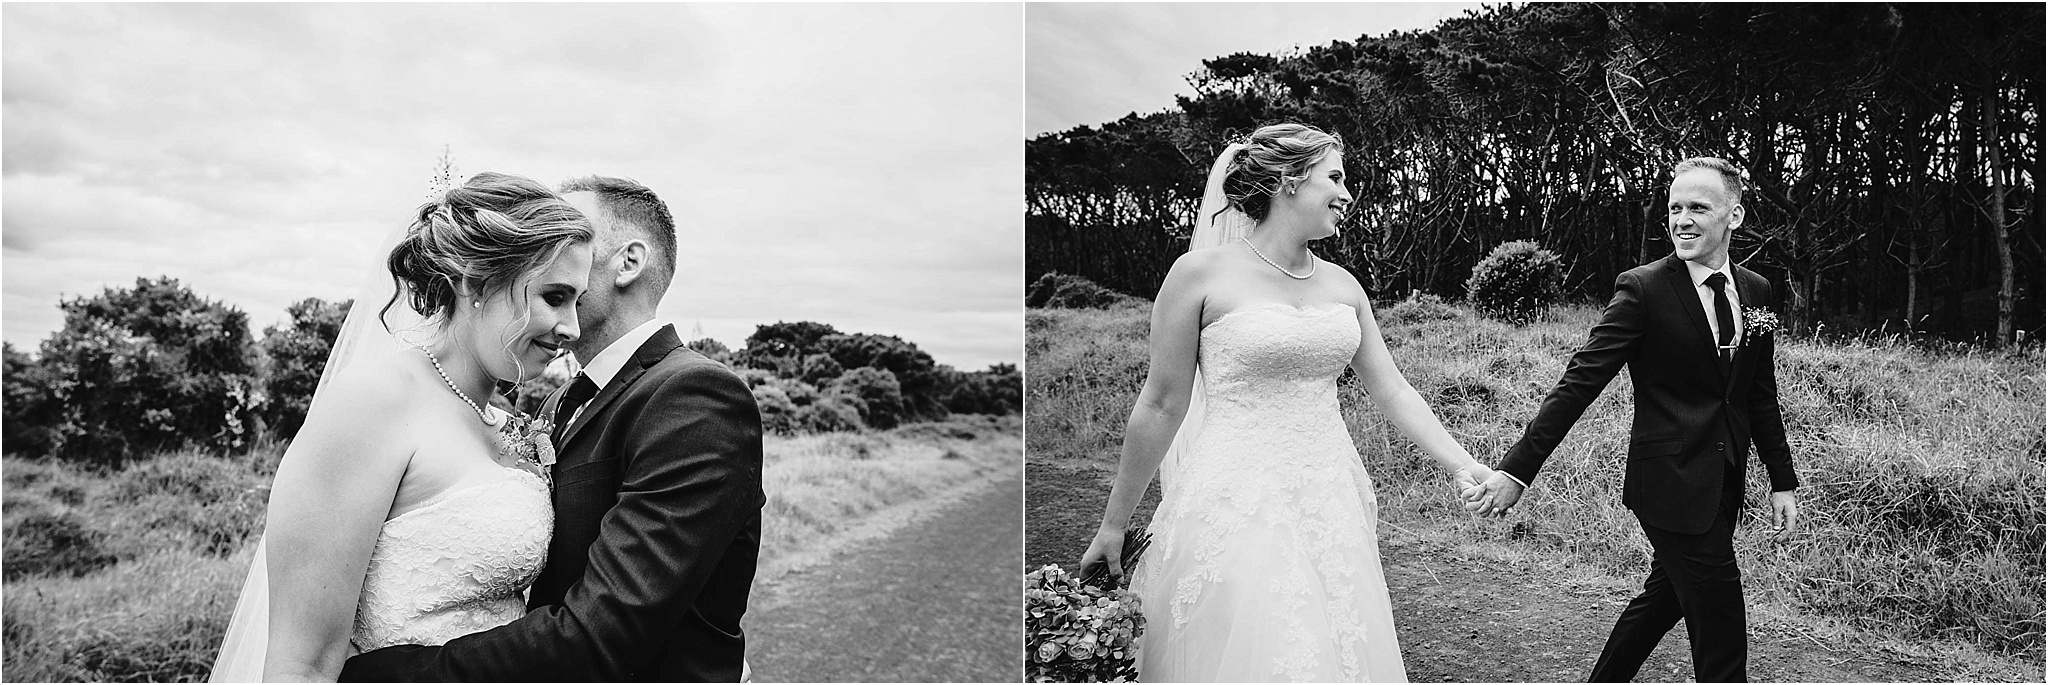 Auckland-Wedding-Photographer-Briana-Dave-Hunting-Lodge-Winery-Married_0083.jpg